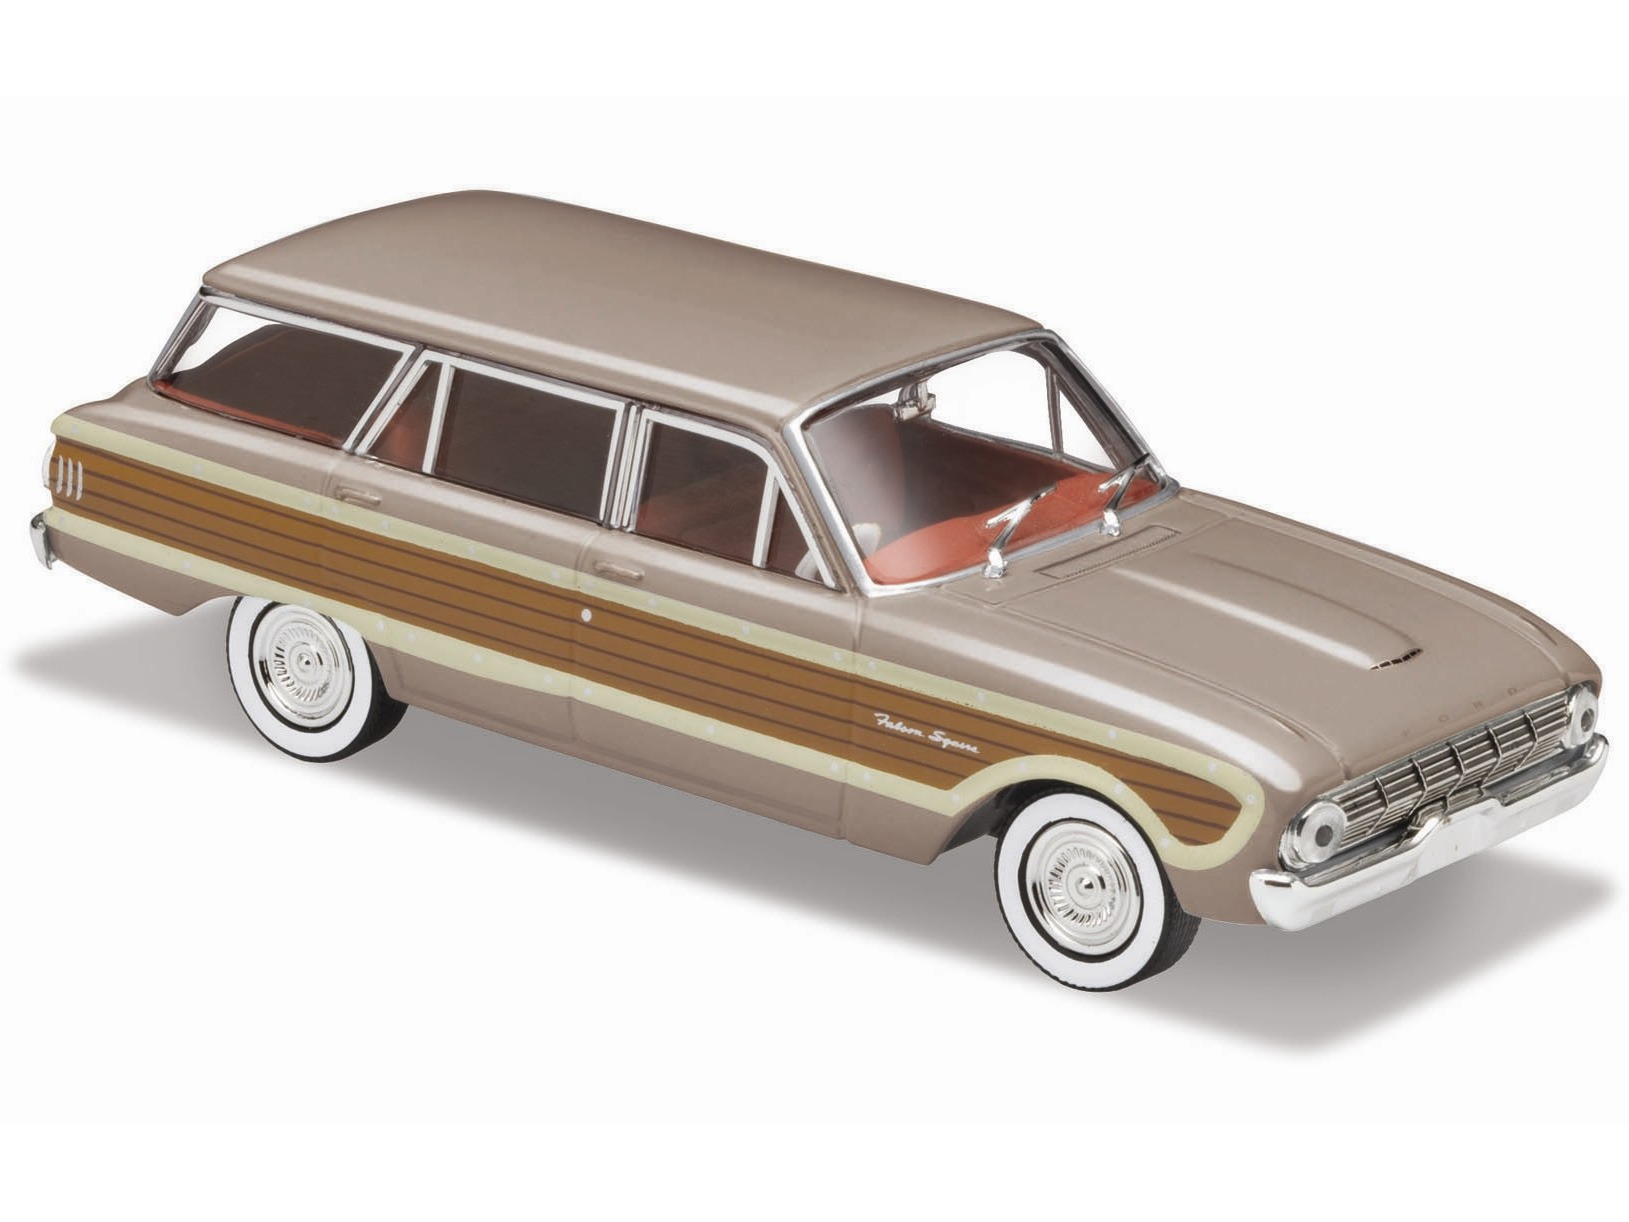 1962 Ford XL Falcon Squire Wagon – Grey / Wood Panels